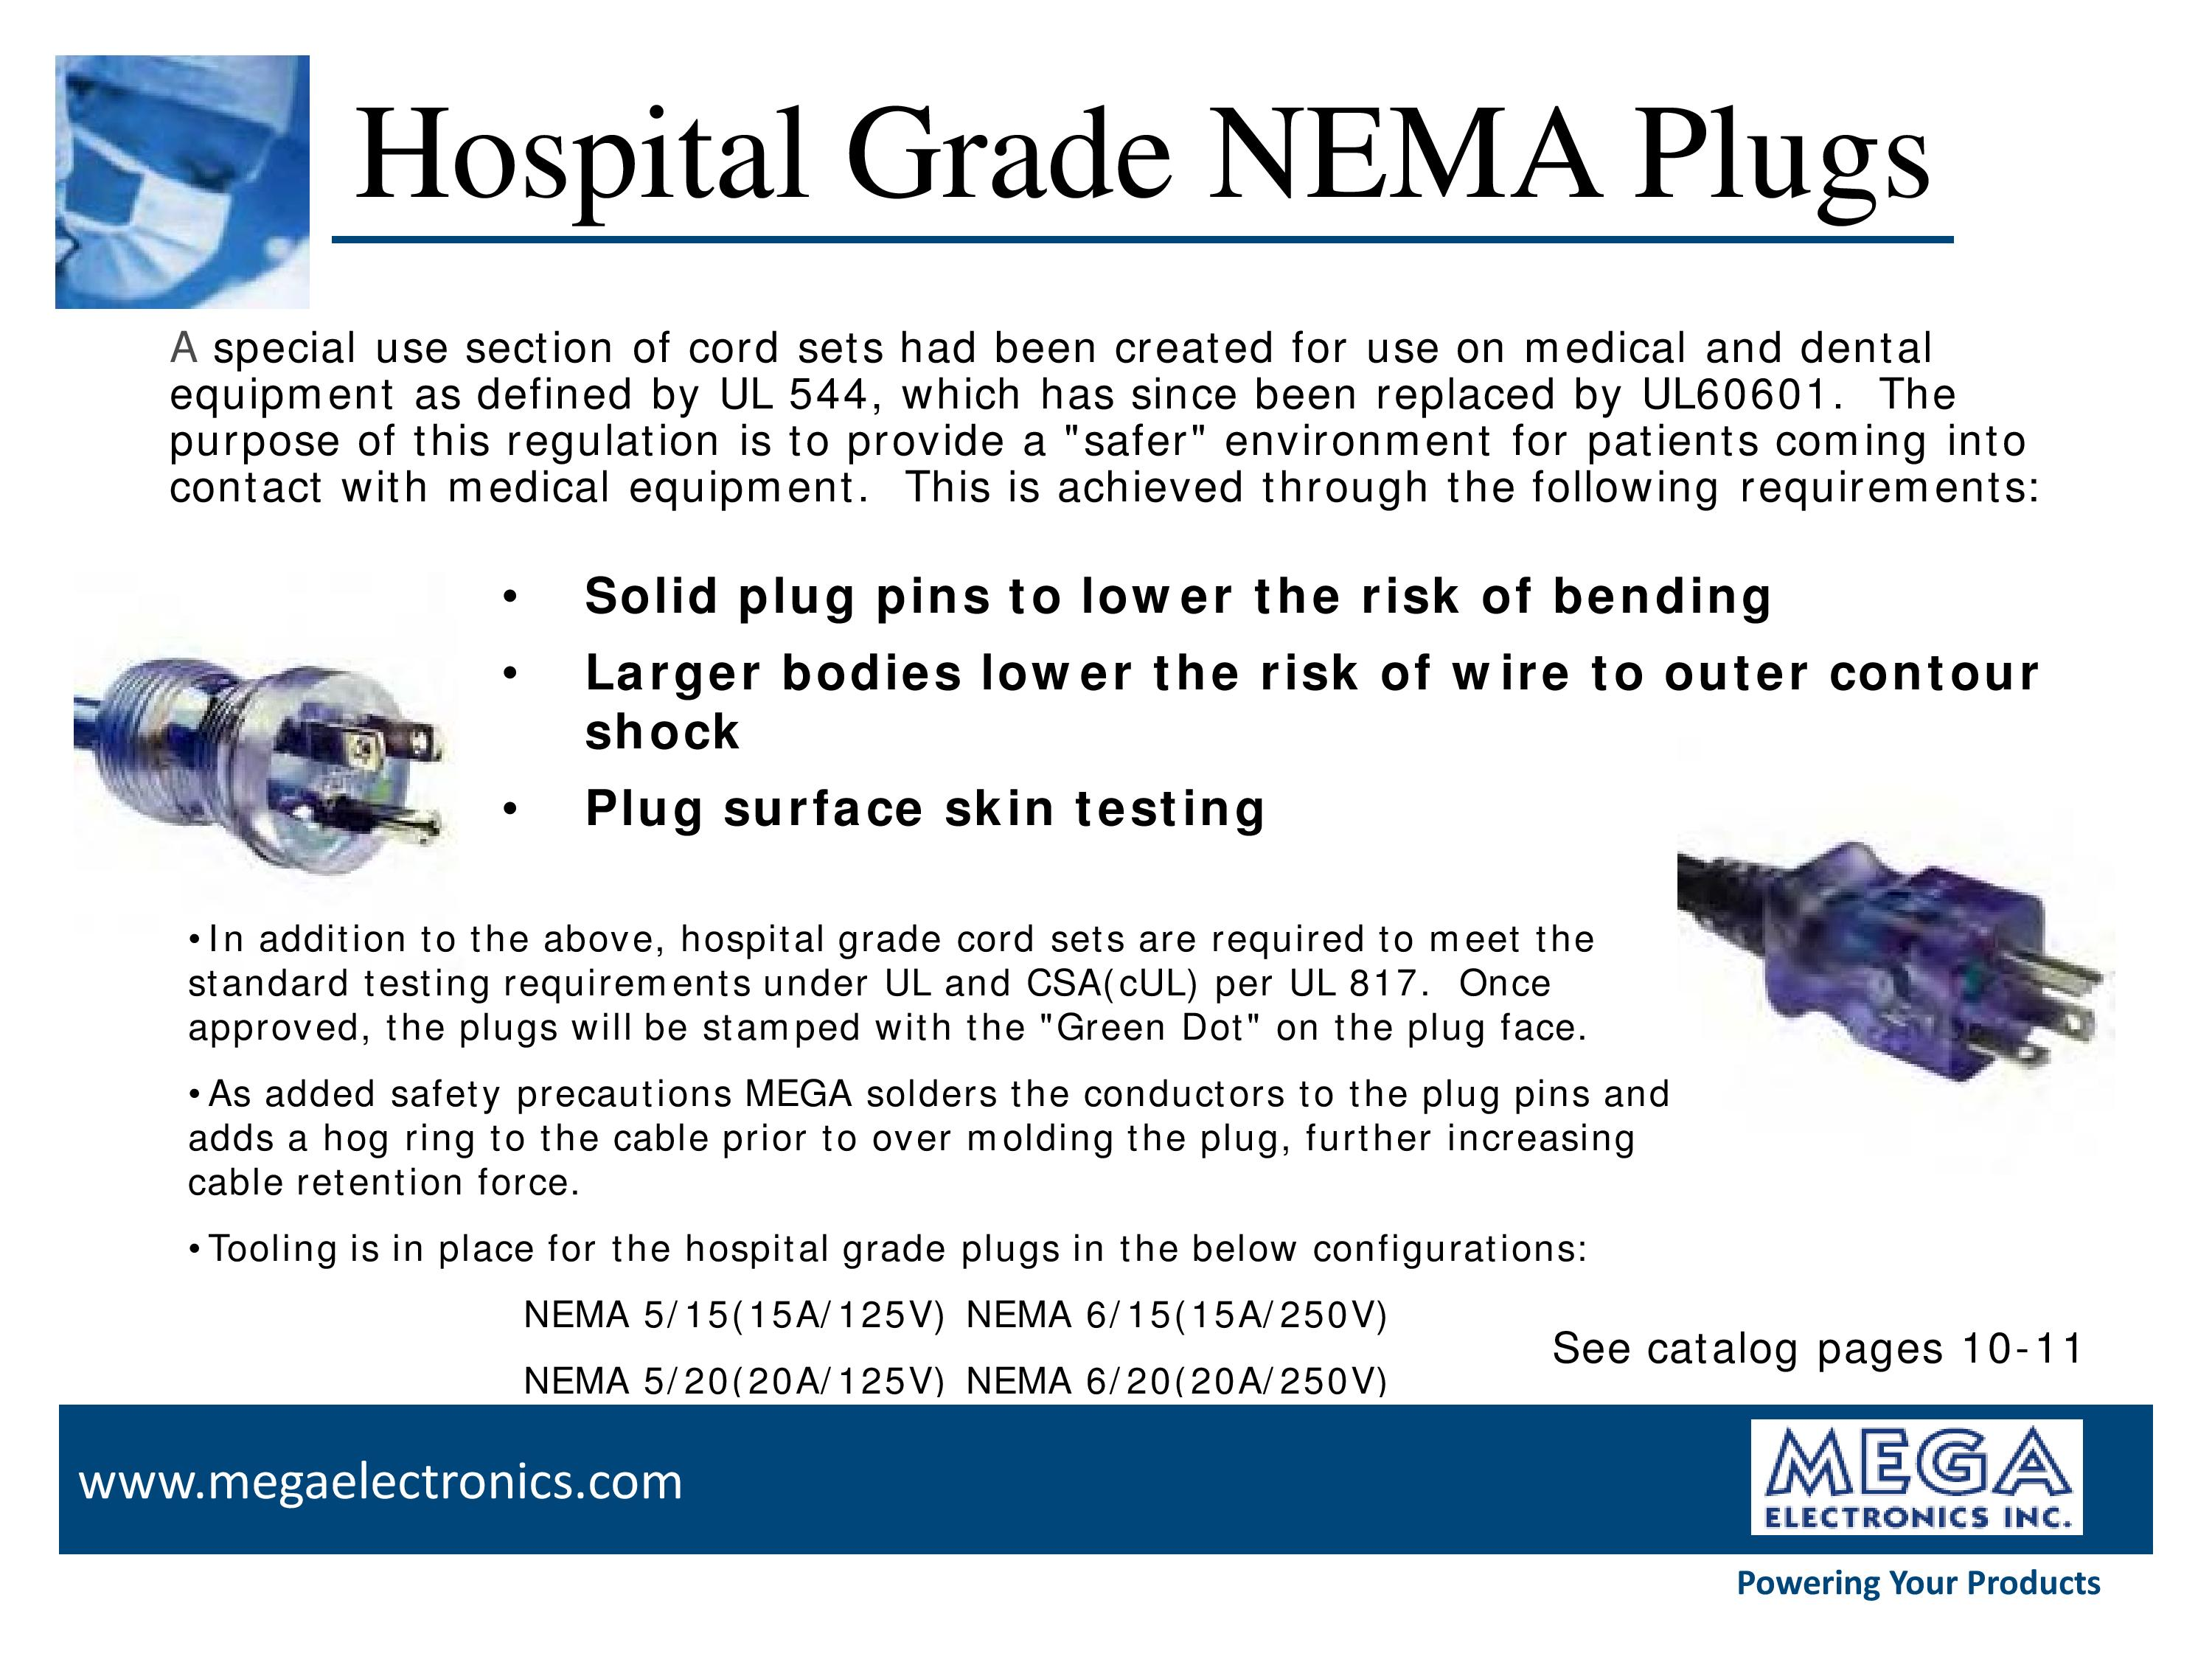 Hospital Grade Power Cords - MEGA Electronics, Inc.